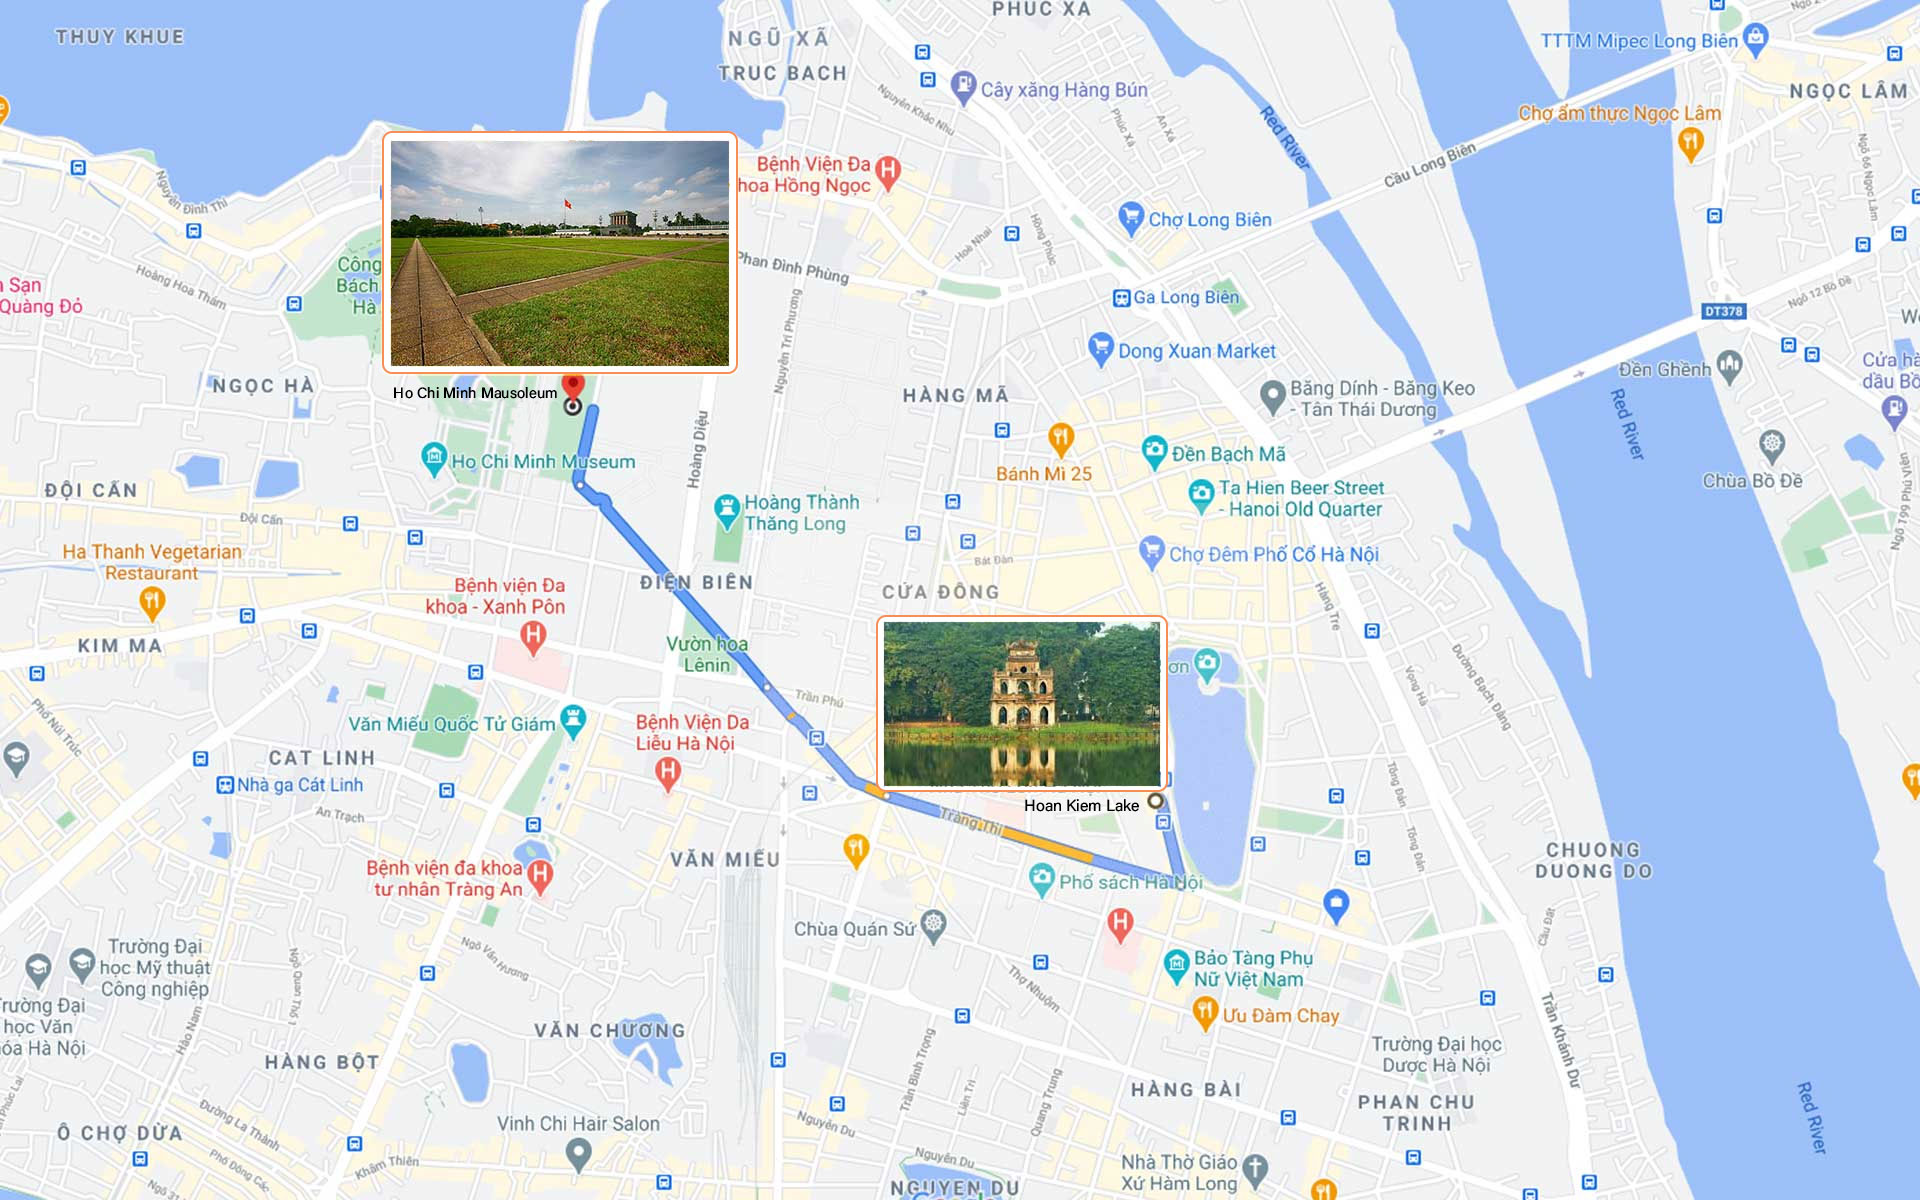 map from city center to Ho Chi Minh Mausoleum